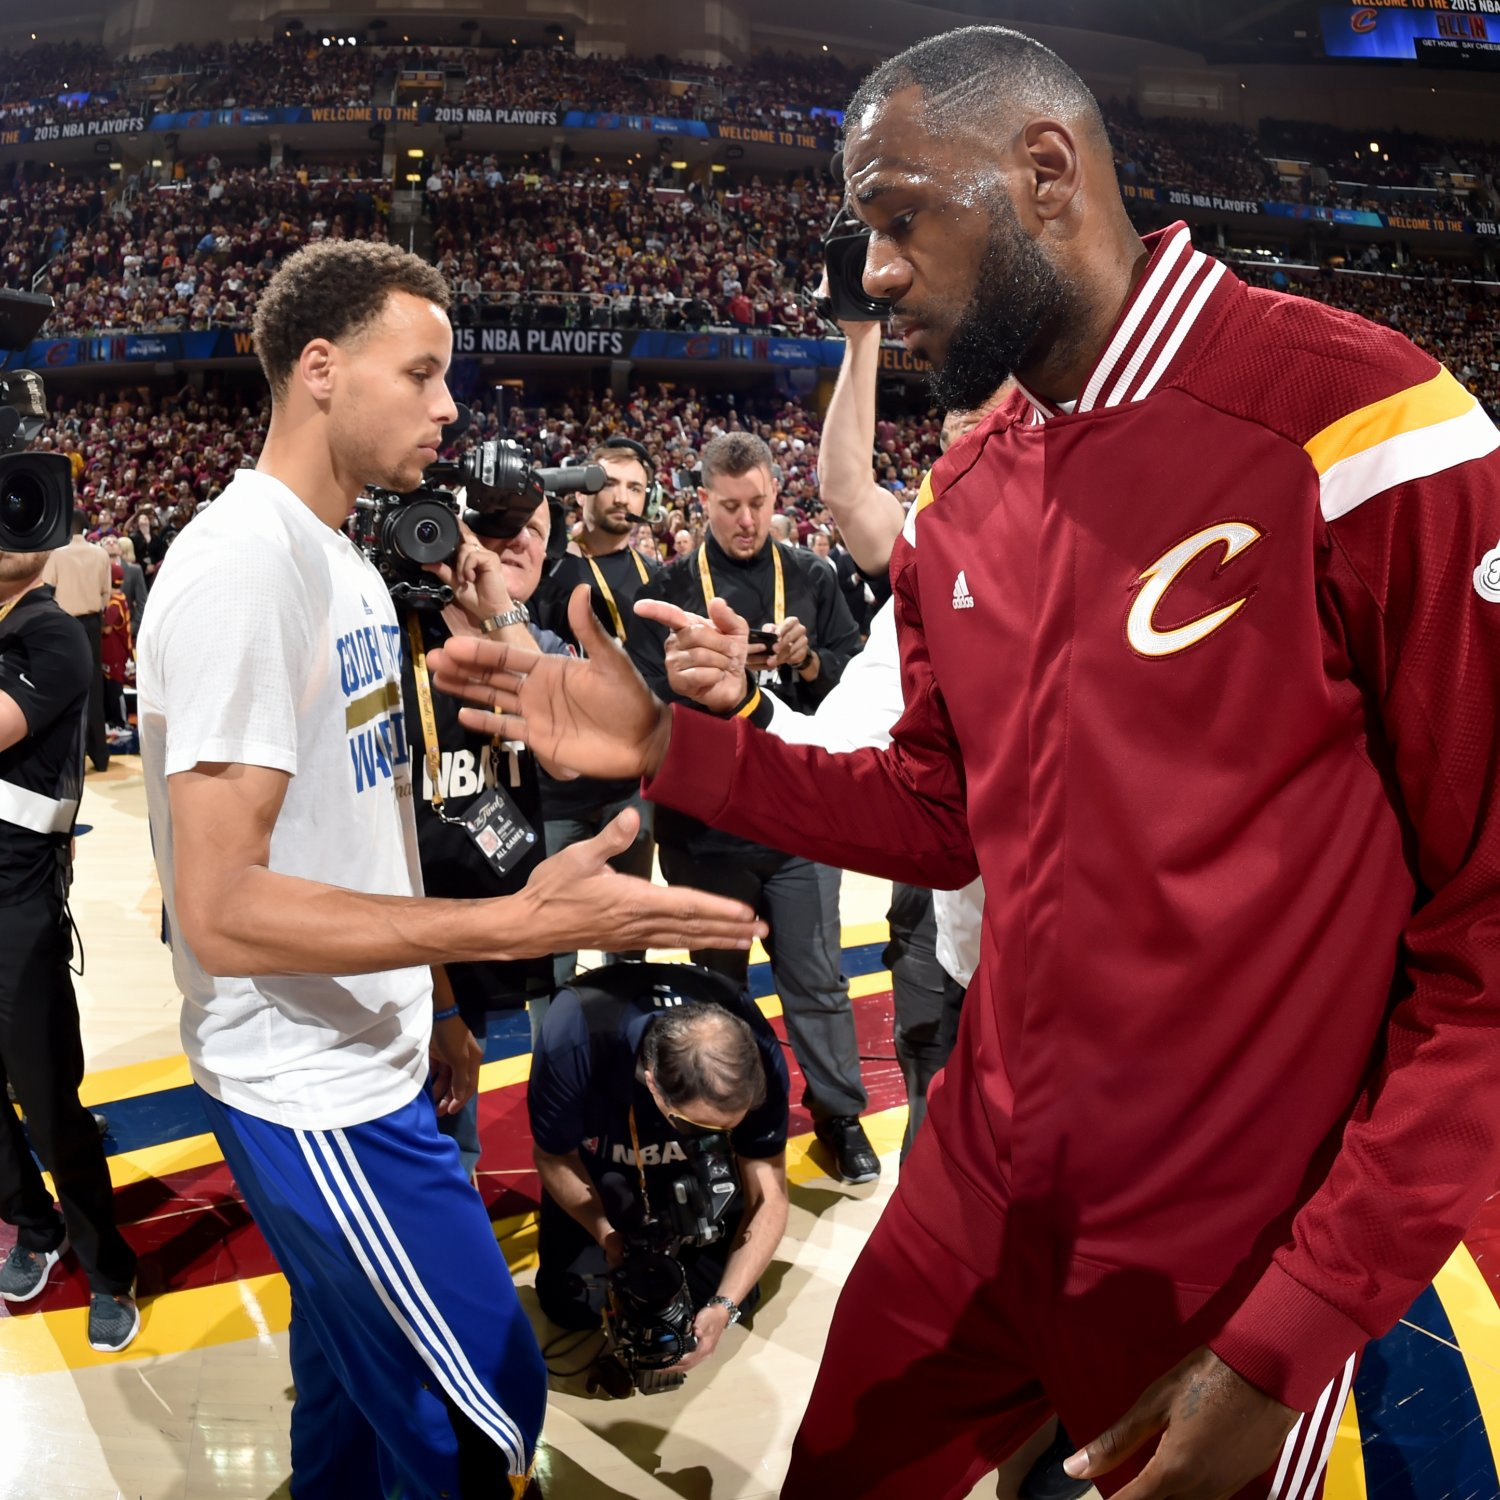 Warriors Vs. Cavaliers: Live Stream Schedule, Odds And